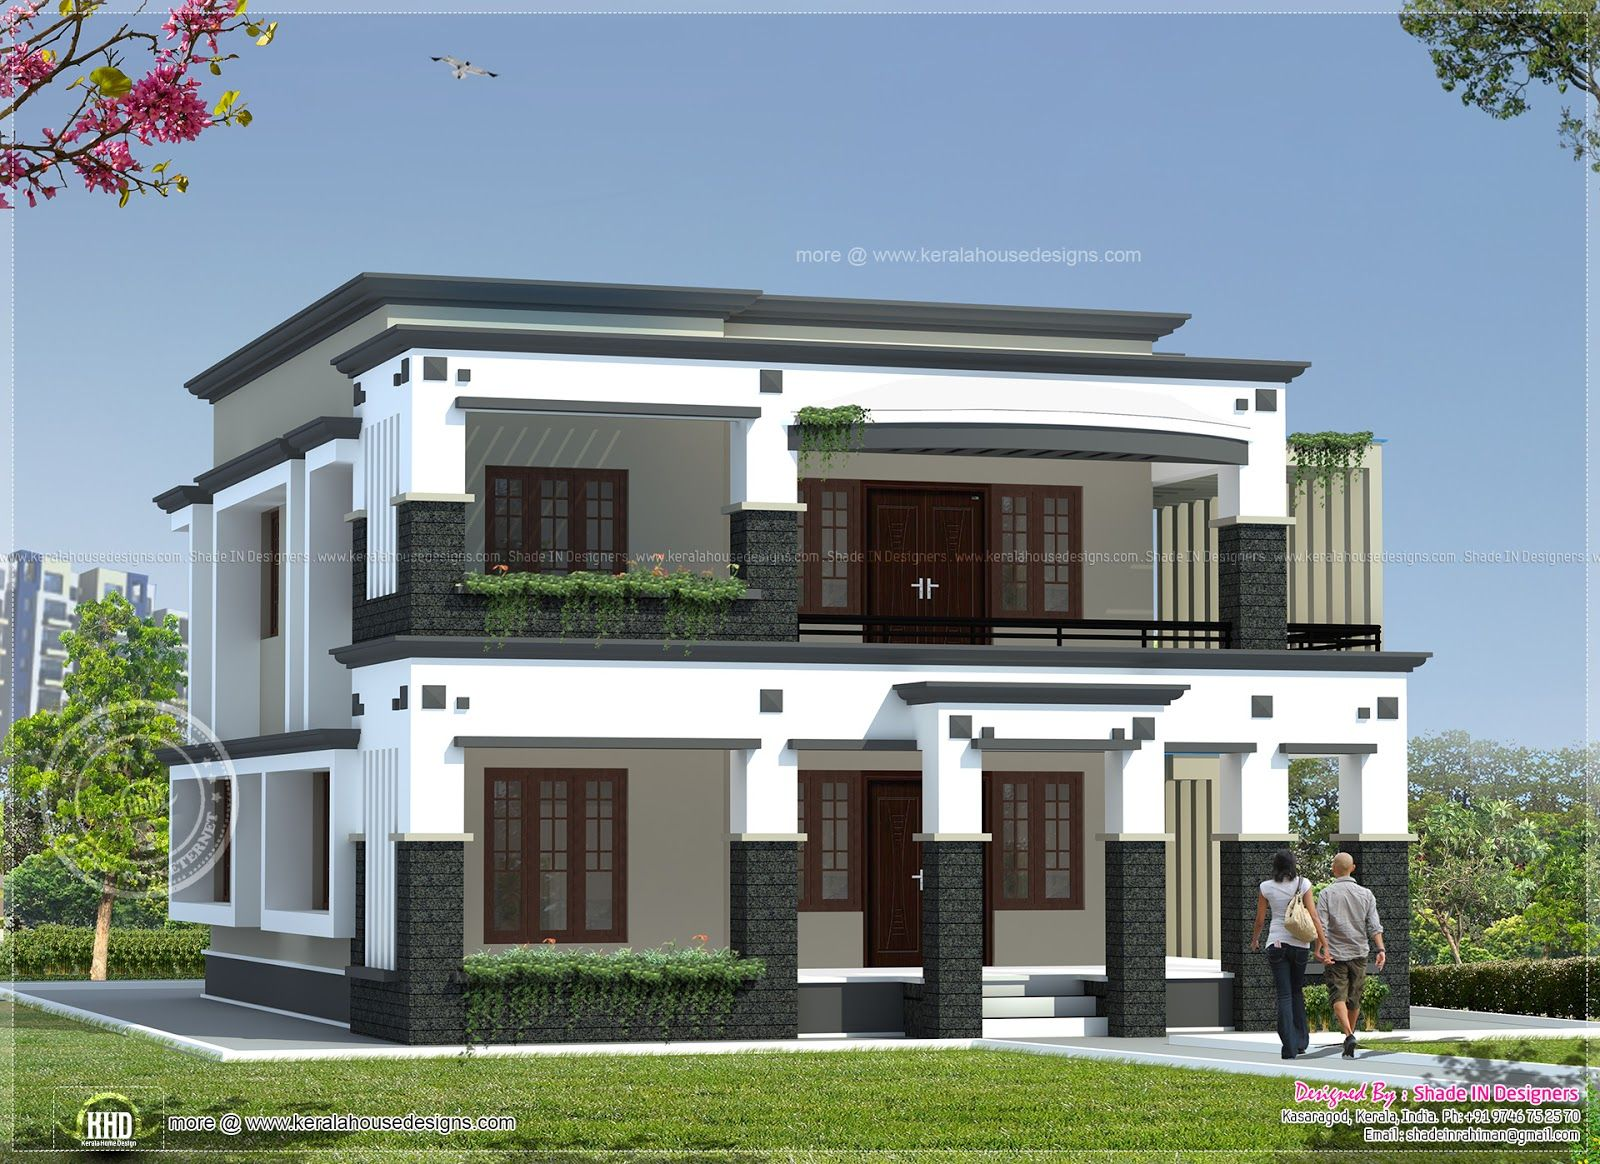 Elevations of single storey residential buildings google search house elevationsquare meterhouse designkeralabuildingsprojects